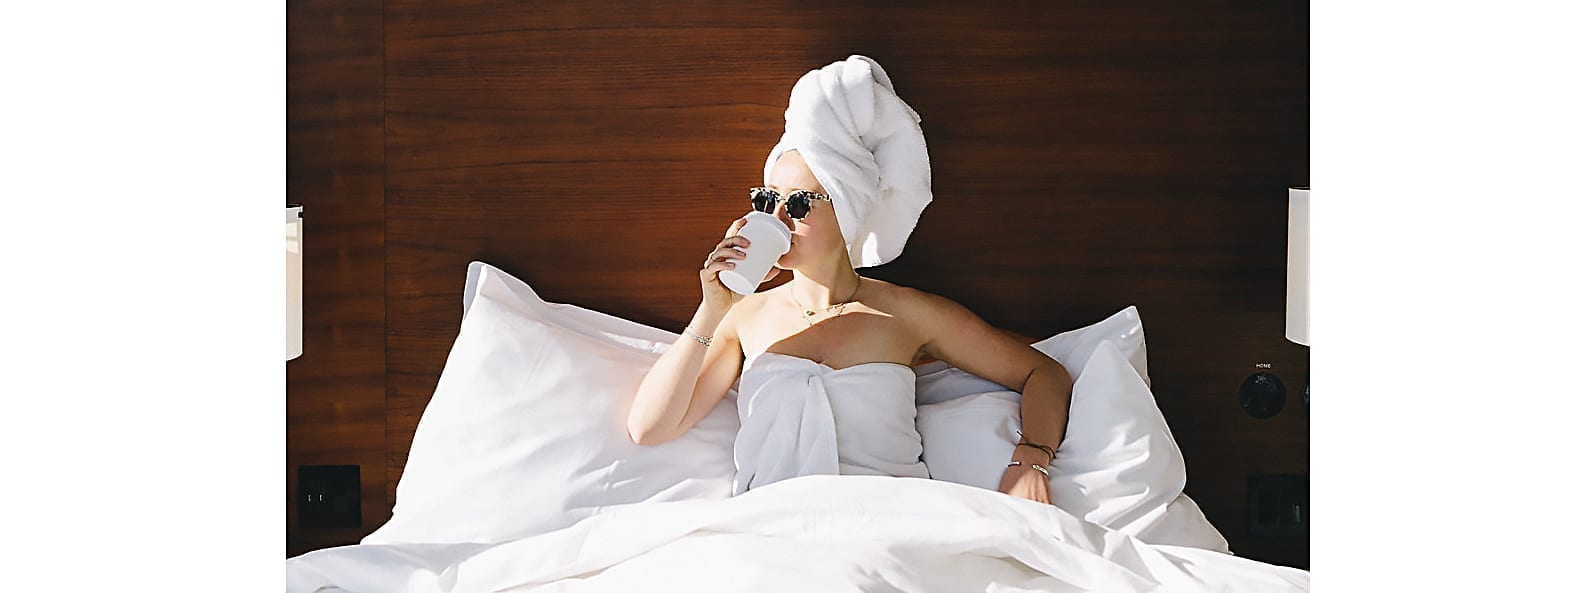 woman sitting on bed in arlo nomad guestroom and wearing sunglasses and a hair towel and drinking a cup of hot coffee and looking towards the sunny window to the left